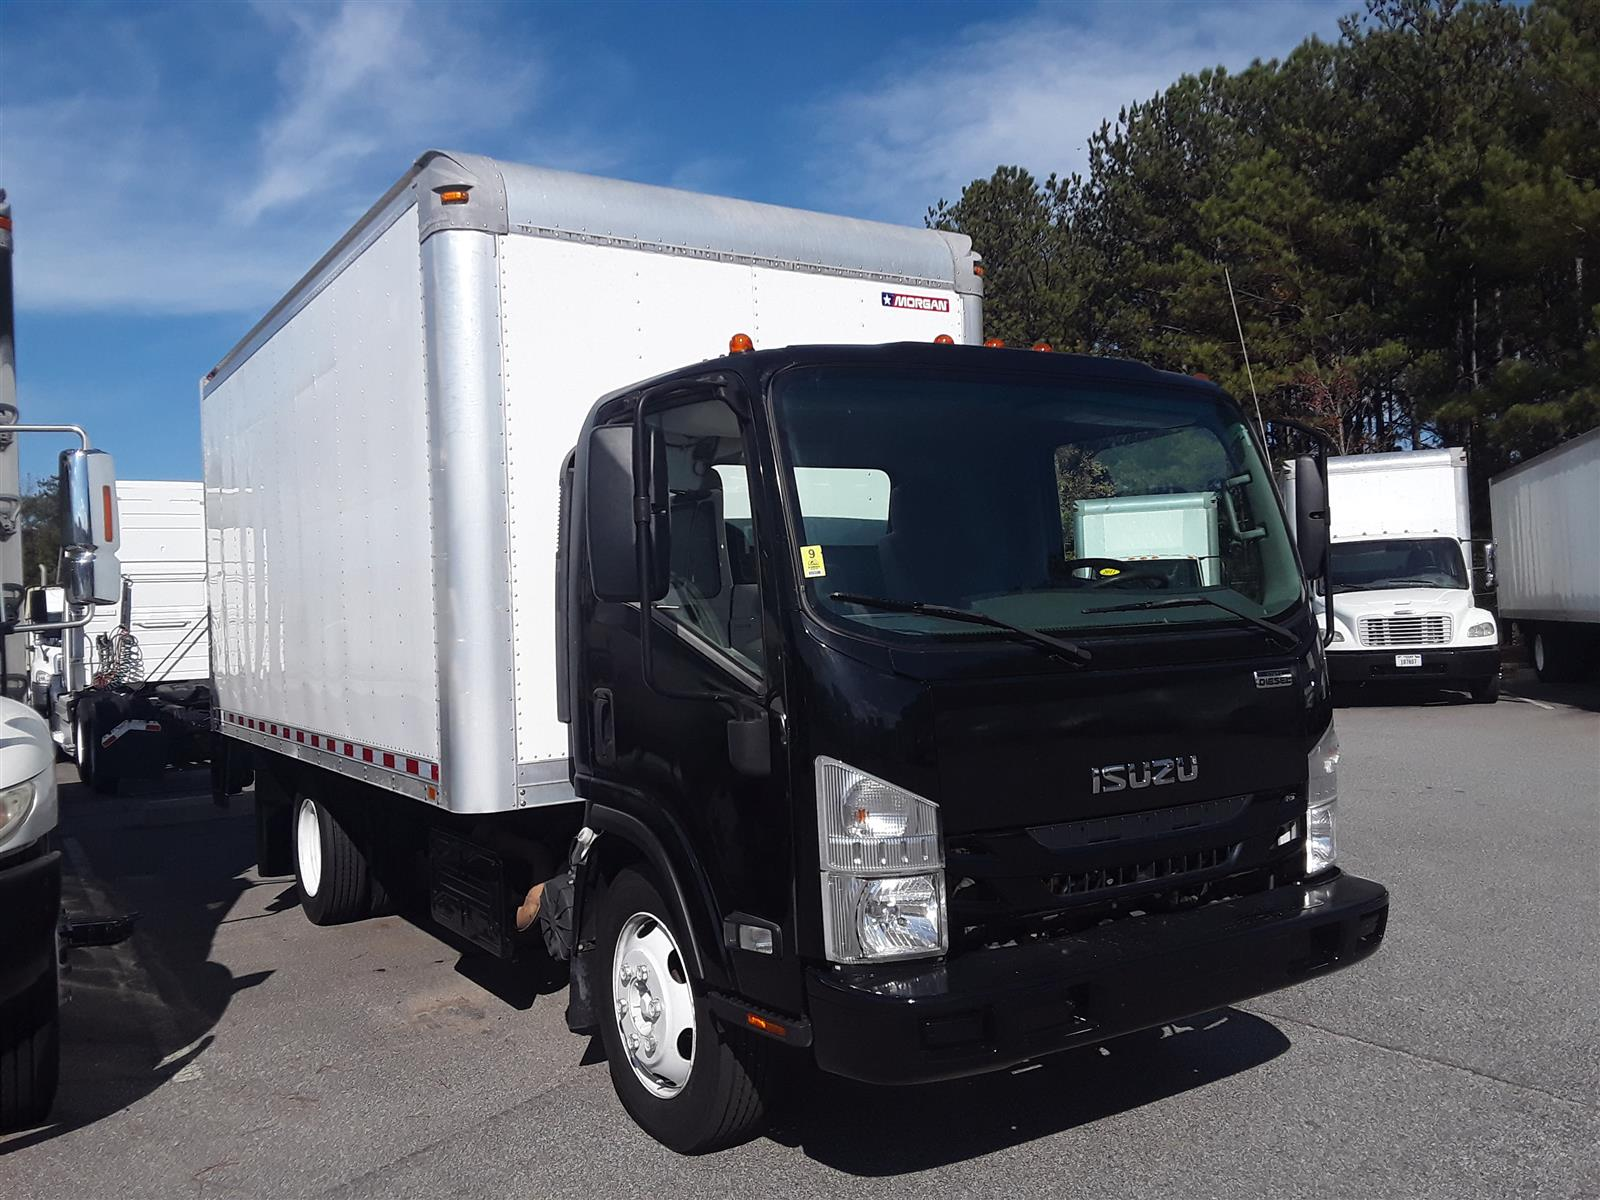 2016 Isuzu NQR Regular Cab 4x2, Dry Freight #656985 - photo 1